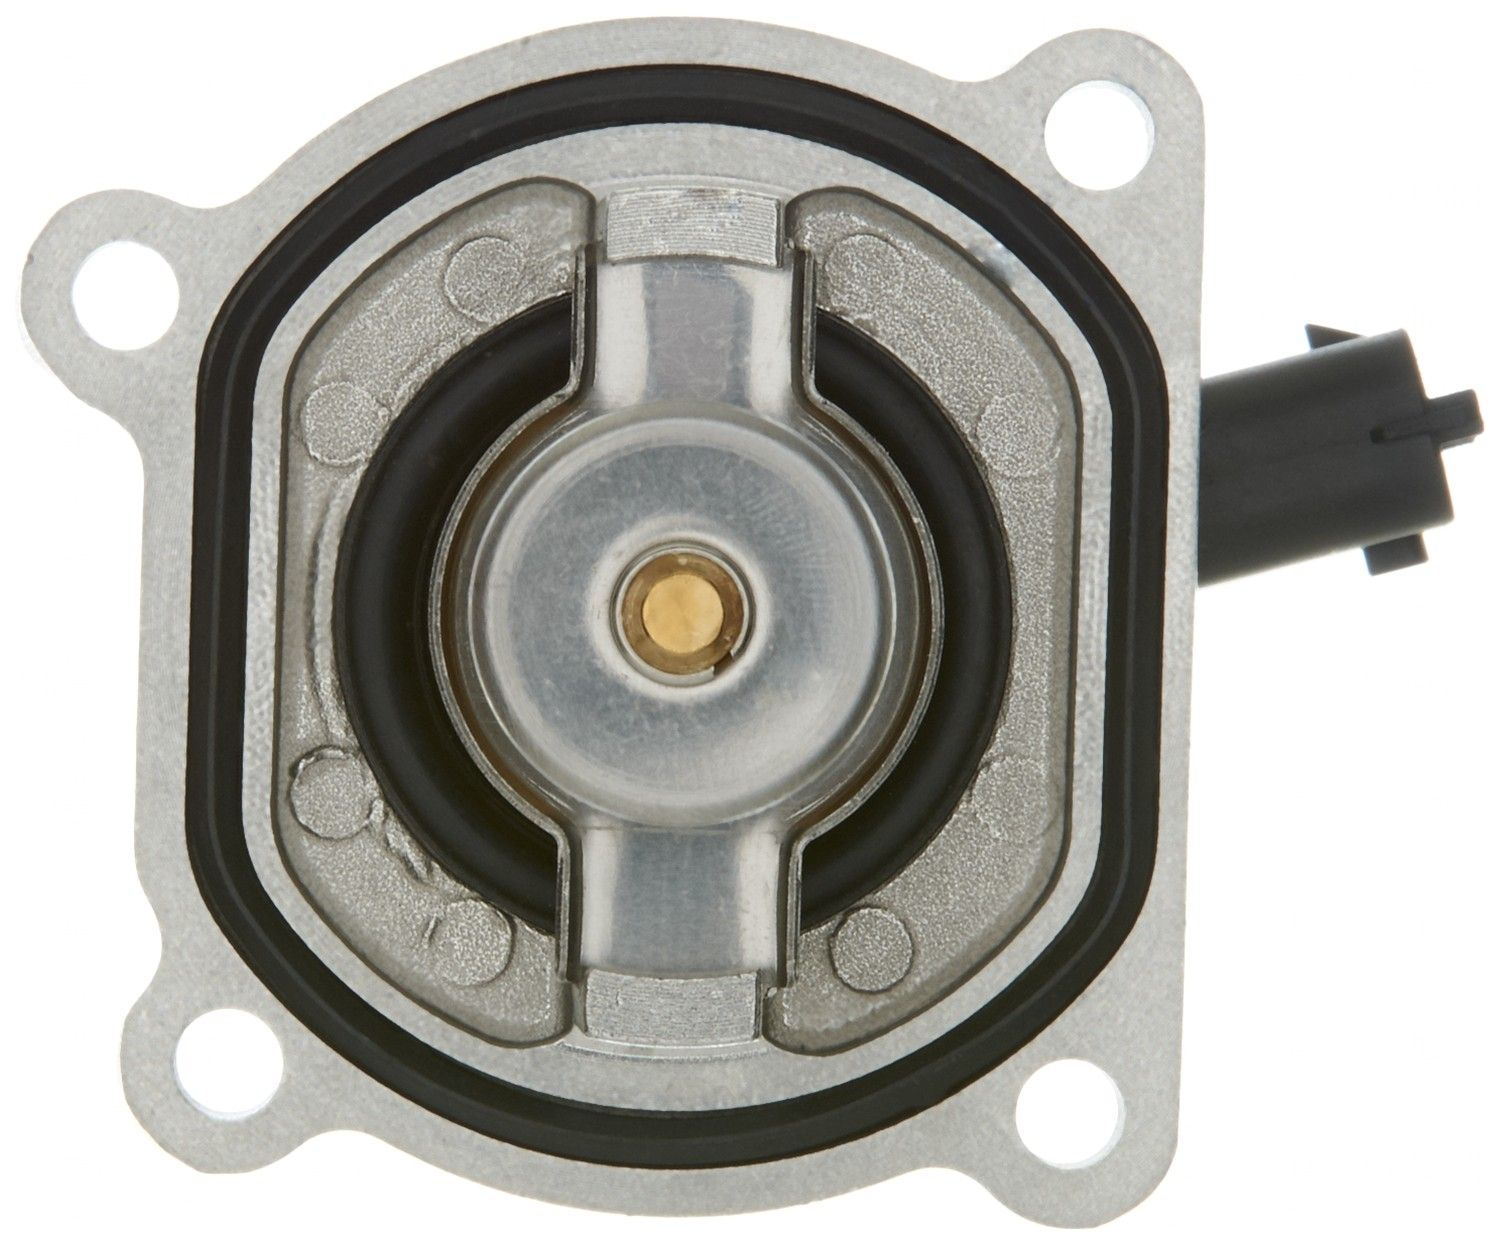 Pontiac G3 Engine Coolant Thermostat Replacement Acdelco Gates 2010 4 Cyl 16l 34710 221 Degree Oe Temperature Seal Included